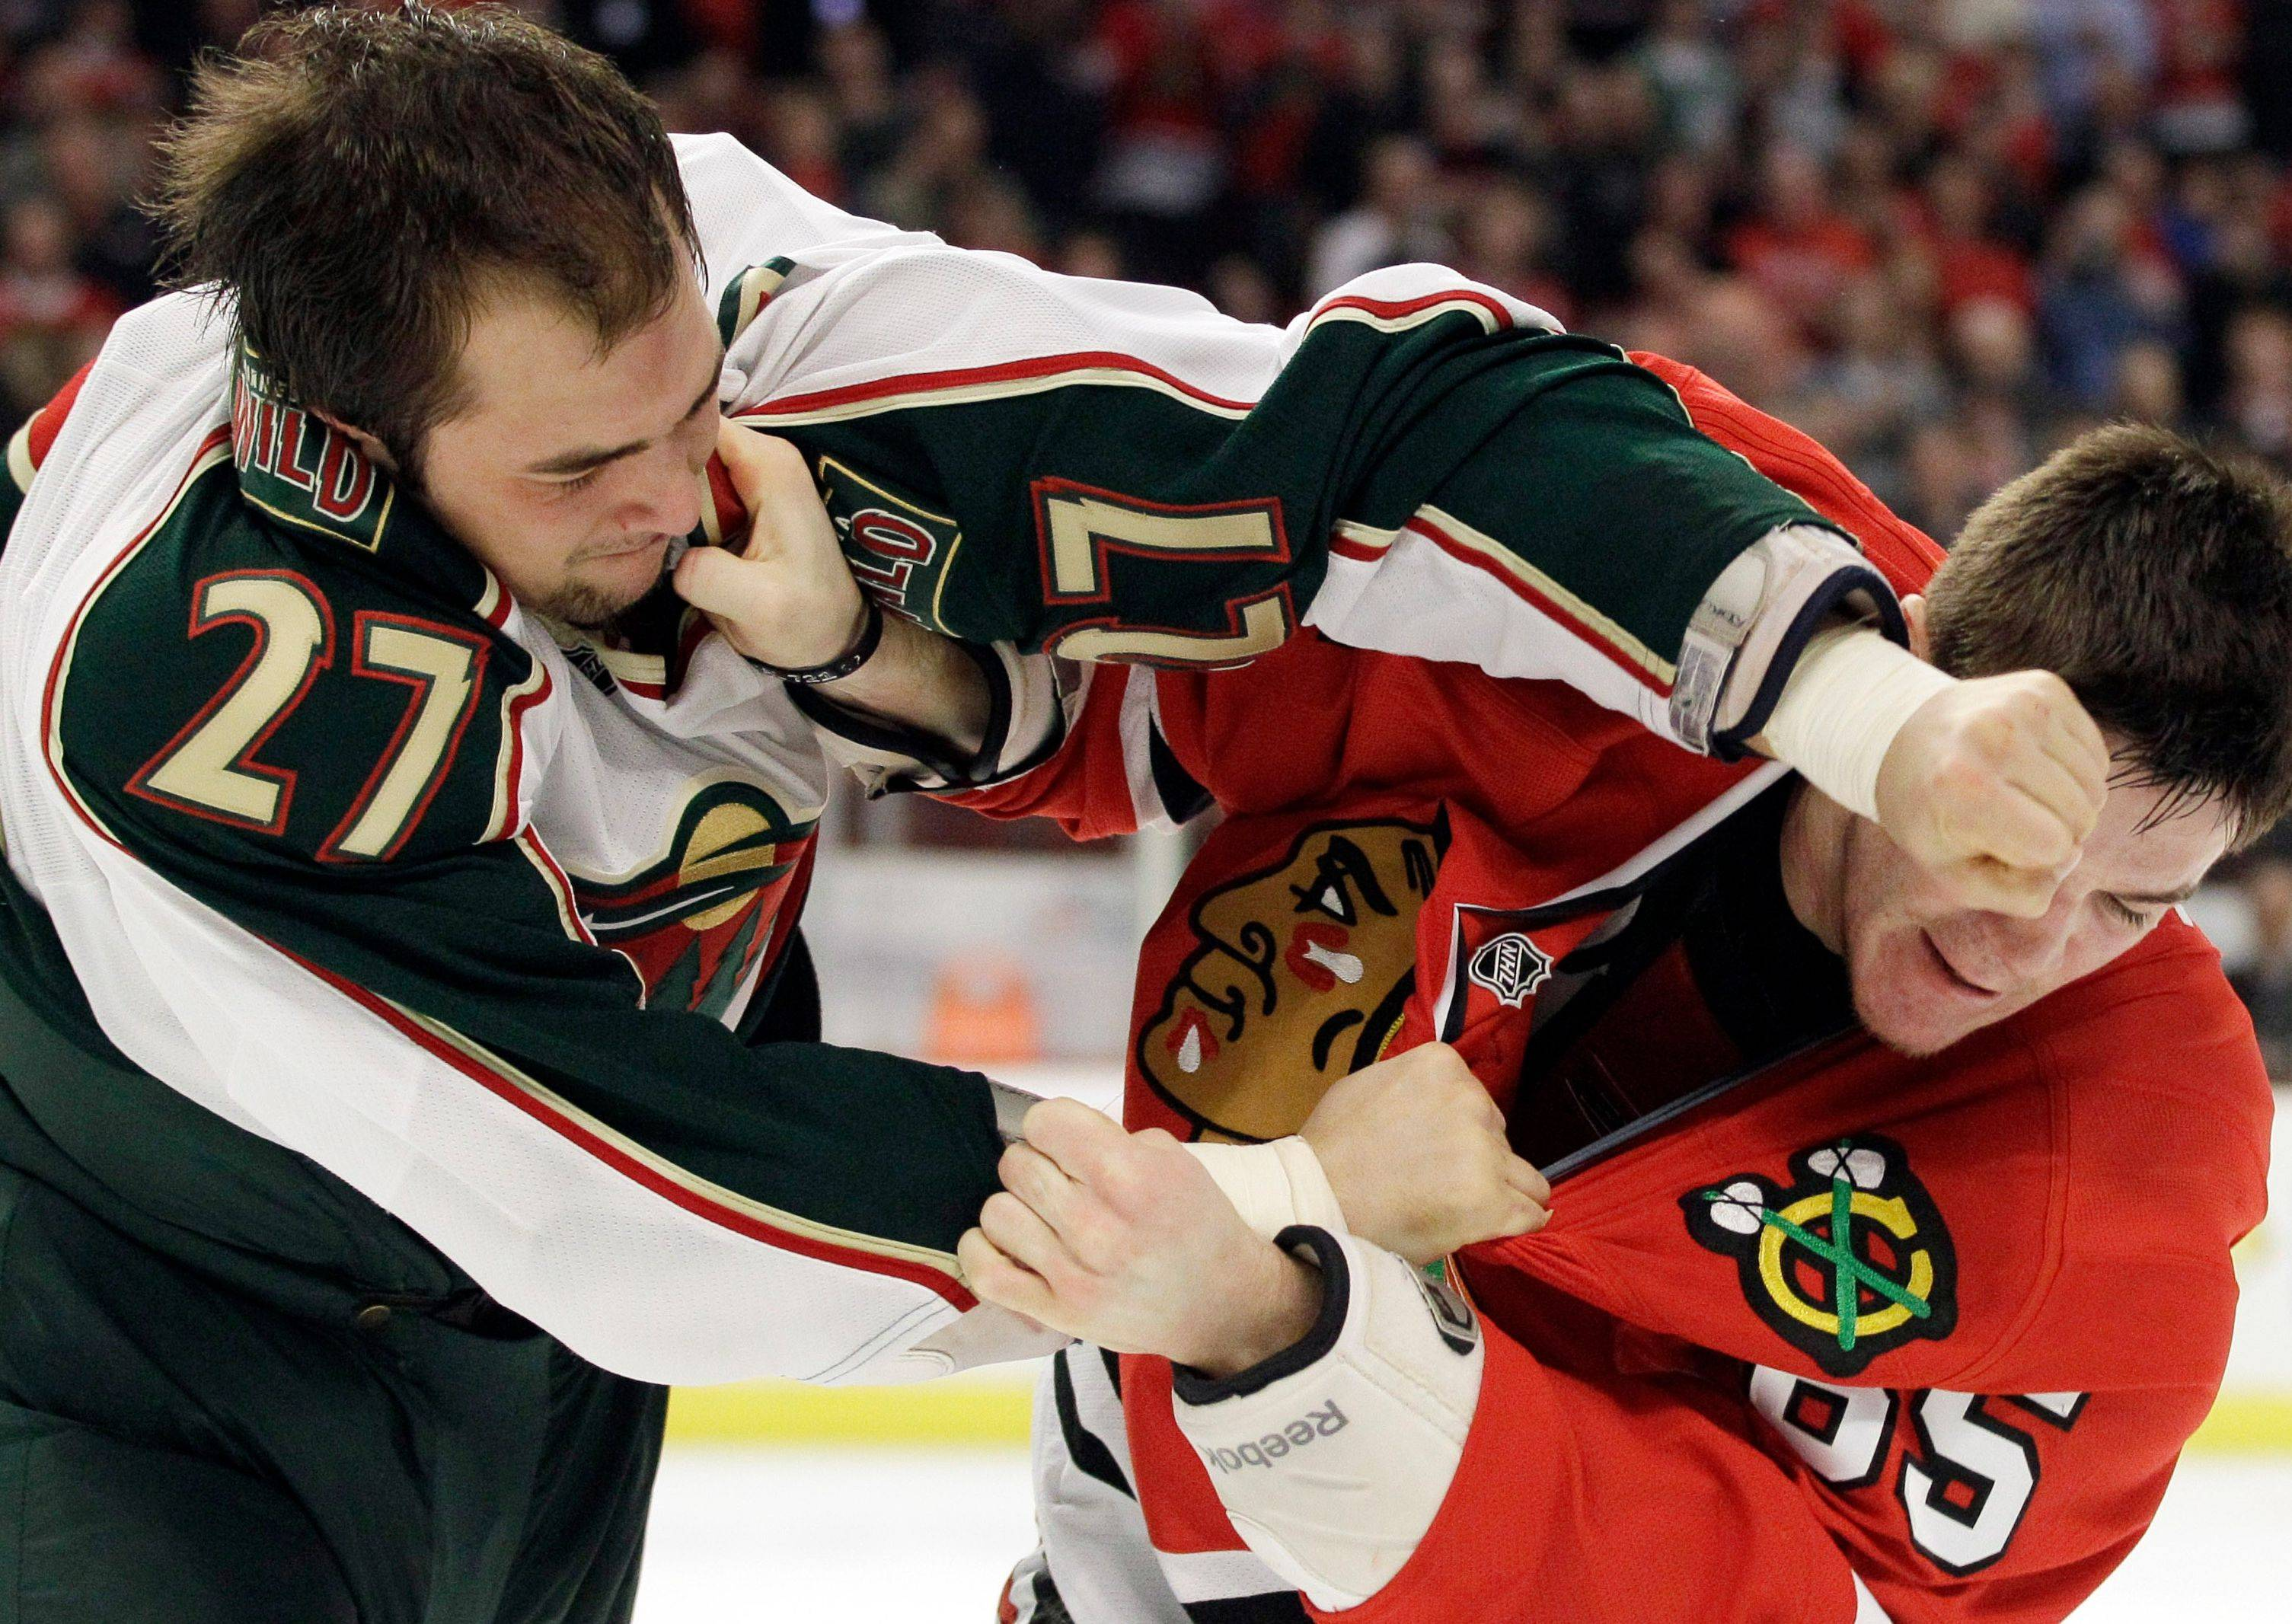 The Wild's Corey Almond, left, fights with the Blackhawks' Andrew Shaw during the second period Sunday night.